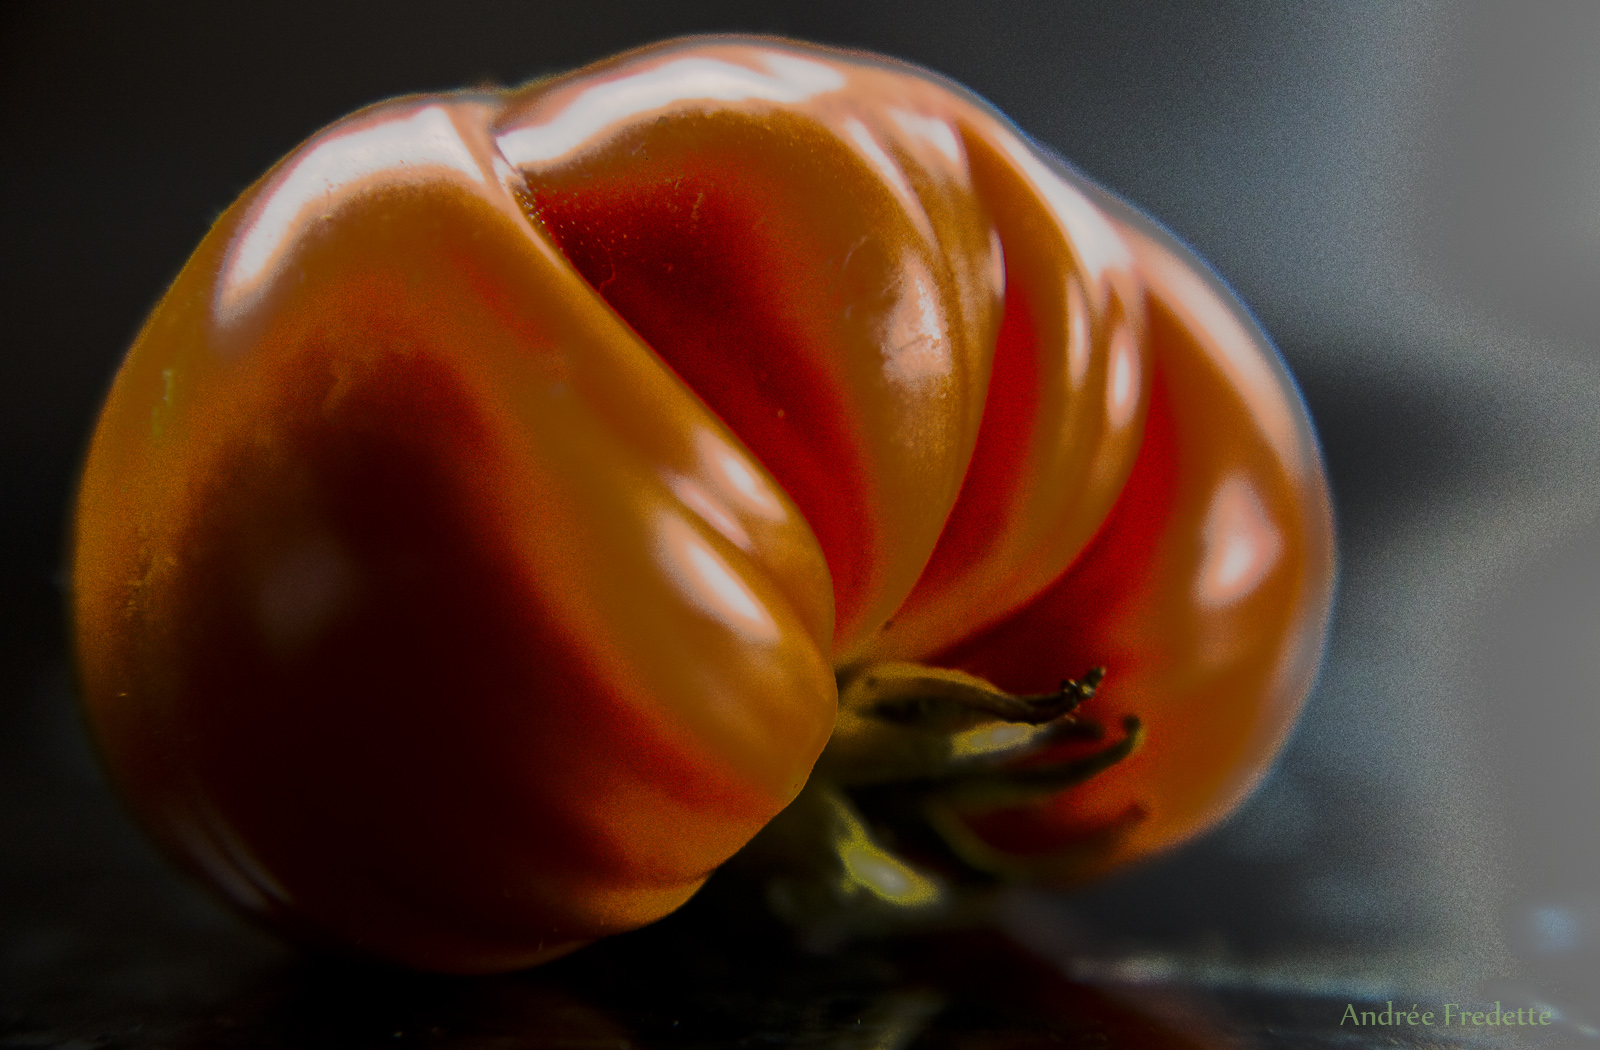 Kiss Summer Goodbye. One of the last Brandywine tomatoes from my garden. Photo by Andrée Fredette